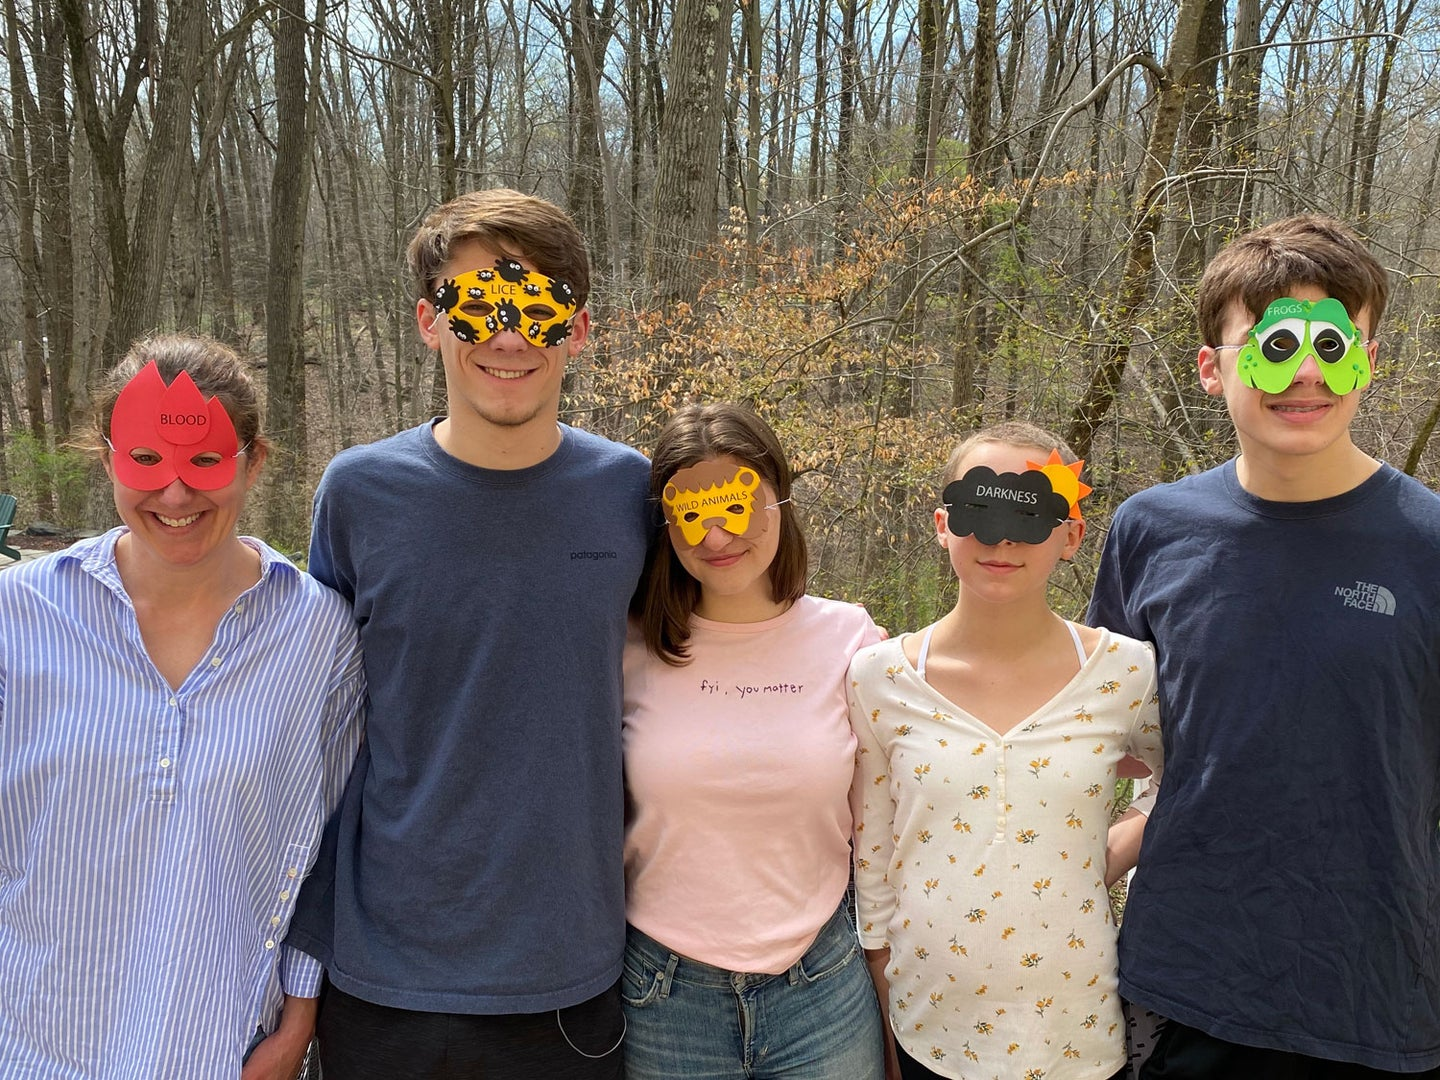 """Author Catherine Tillman Whalen (far left, """"blood""""), her three children (Jack, second from left, """"lice""""; her daughter, second from right, """"darkness""""; her younger son, far right, """"frogs"""") and their """"plus one"""", Ava (center, """"wild animals"""") don masks representing a few of the ten plagues on Egypt."""